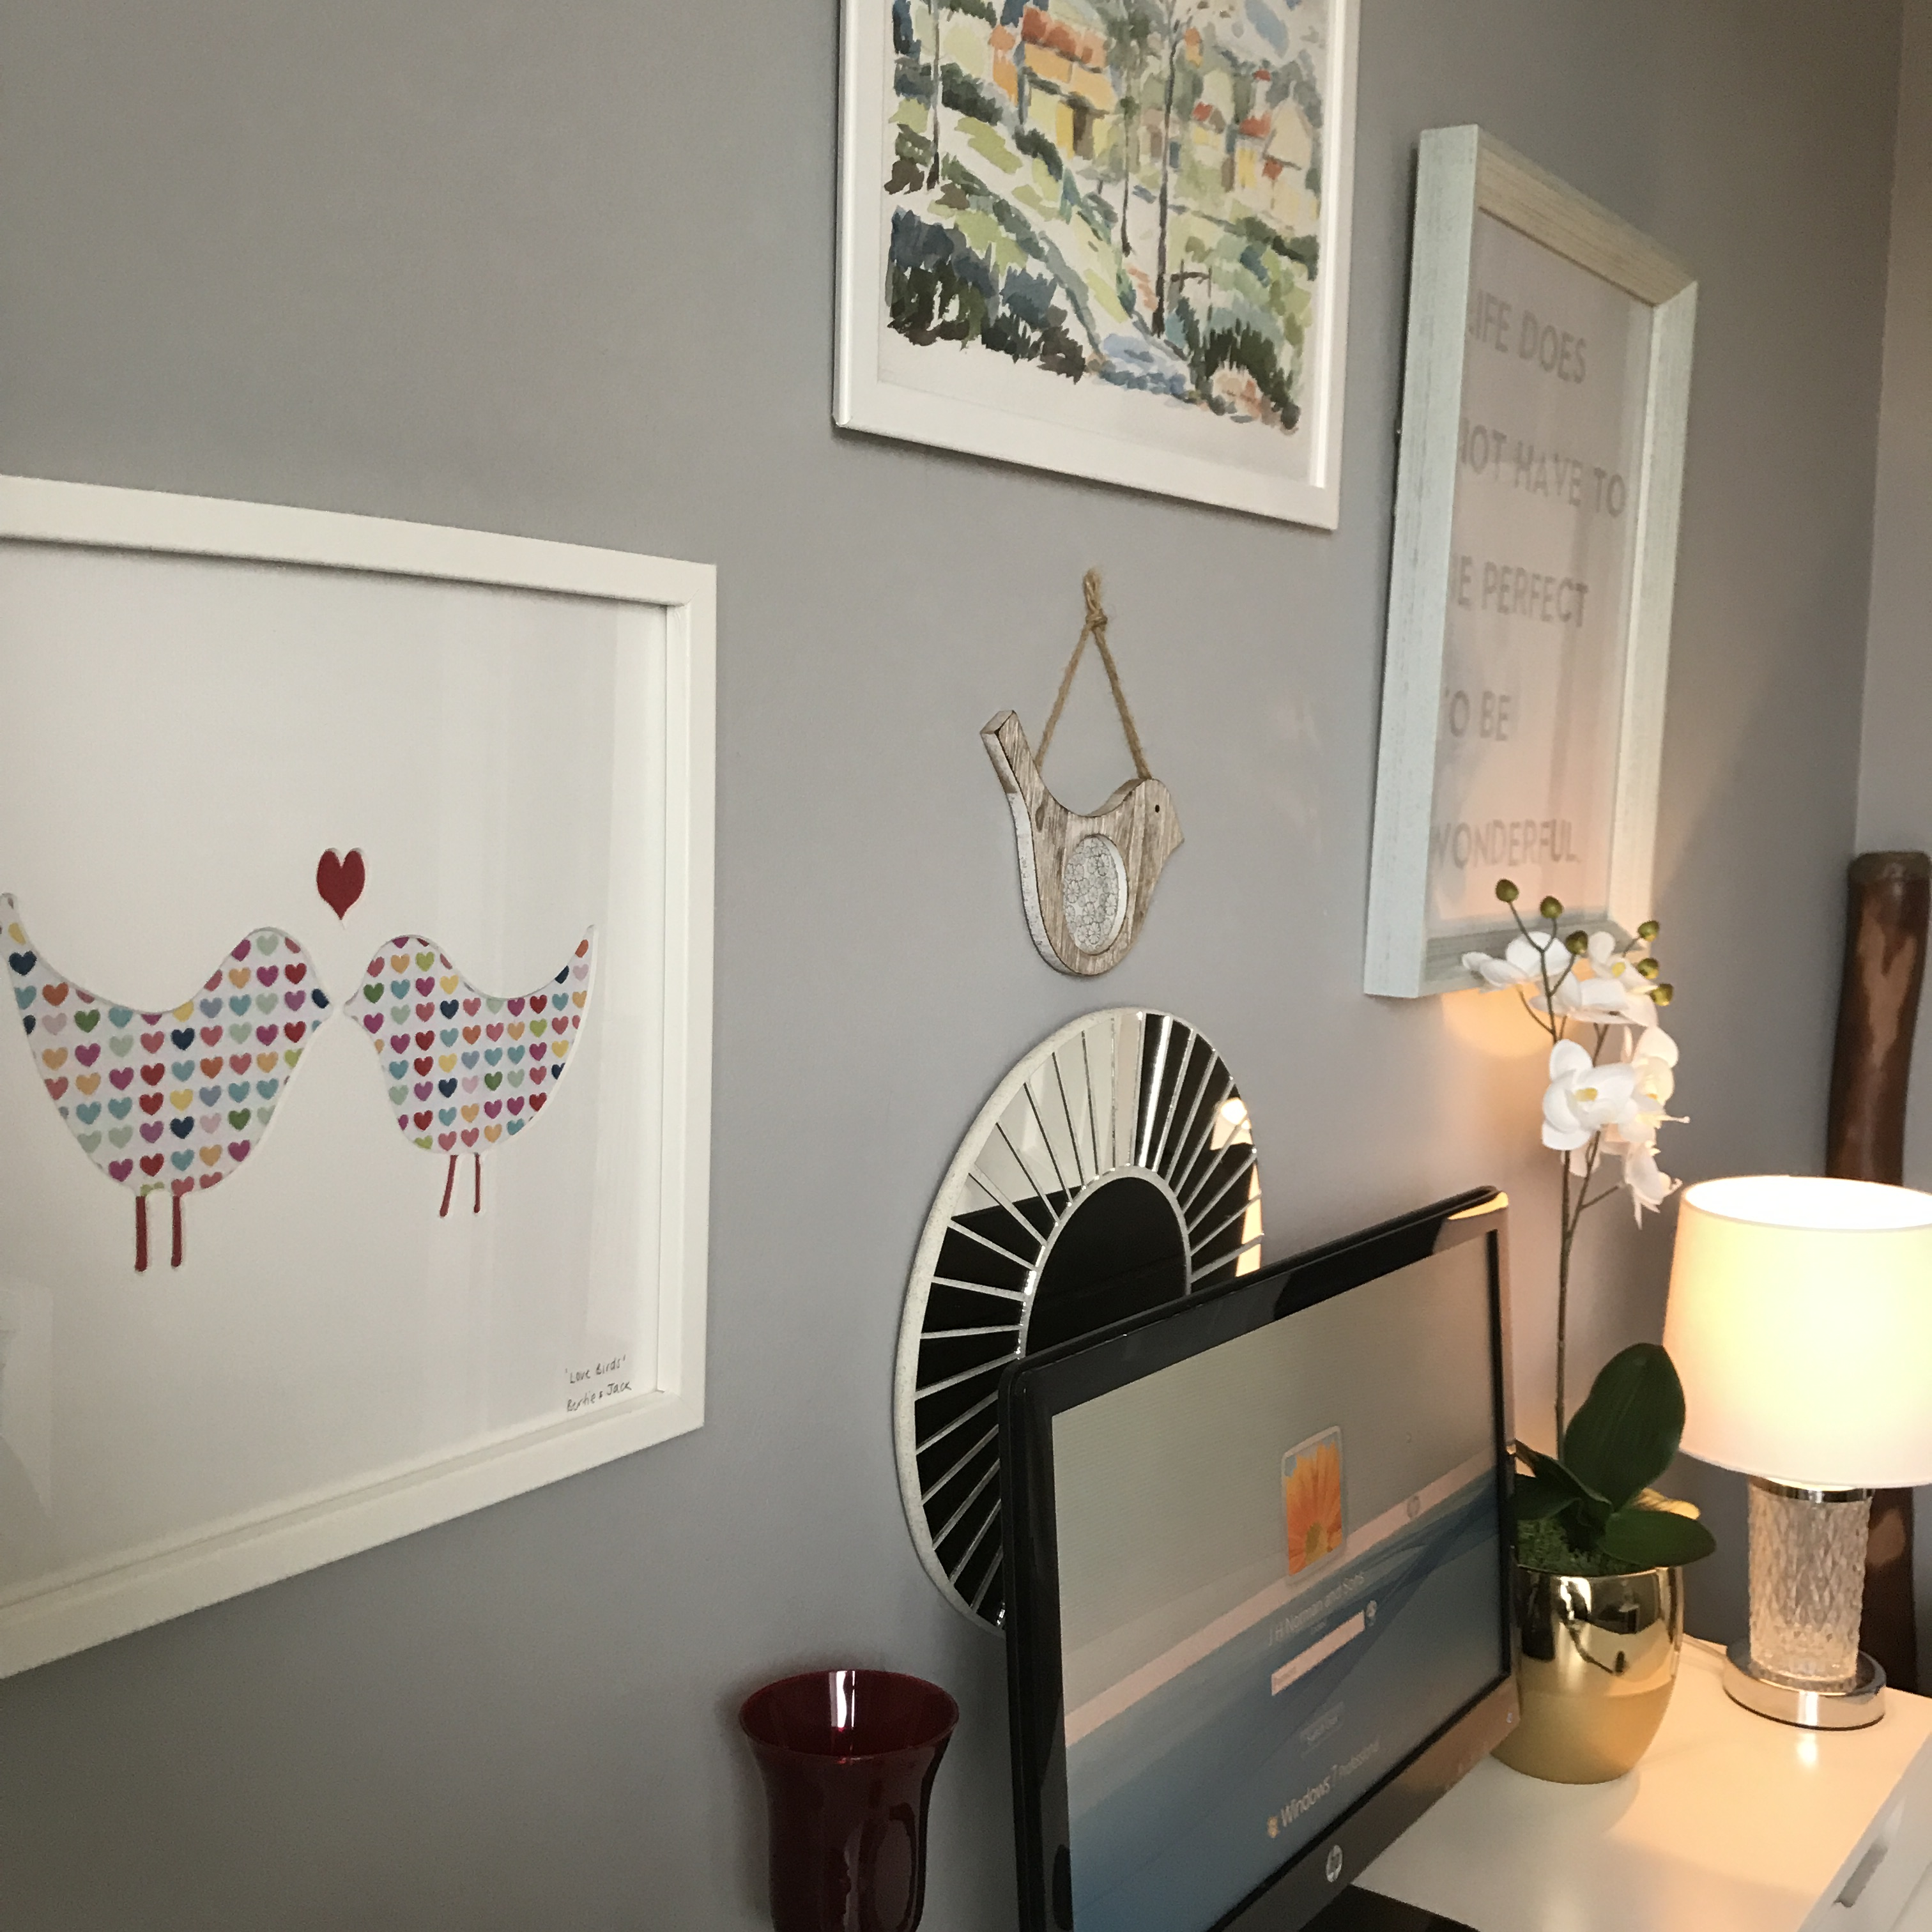 When It Came To Designing My Office Nook, Of Course I Turned To Pinterest  For Inspiration. As You Can See I Have A Recurring Theme In All Of My Pins  On My ...